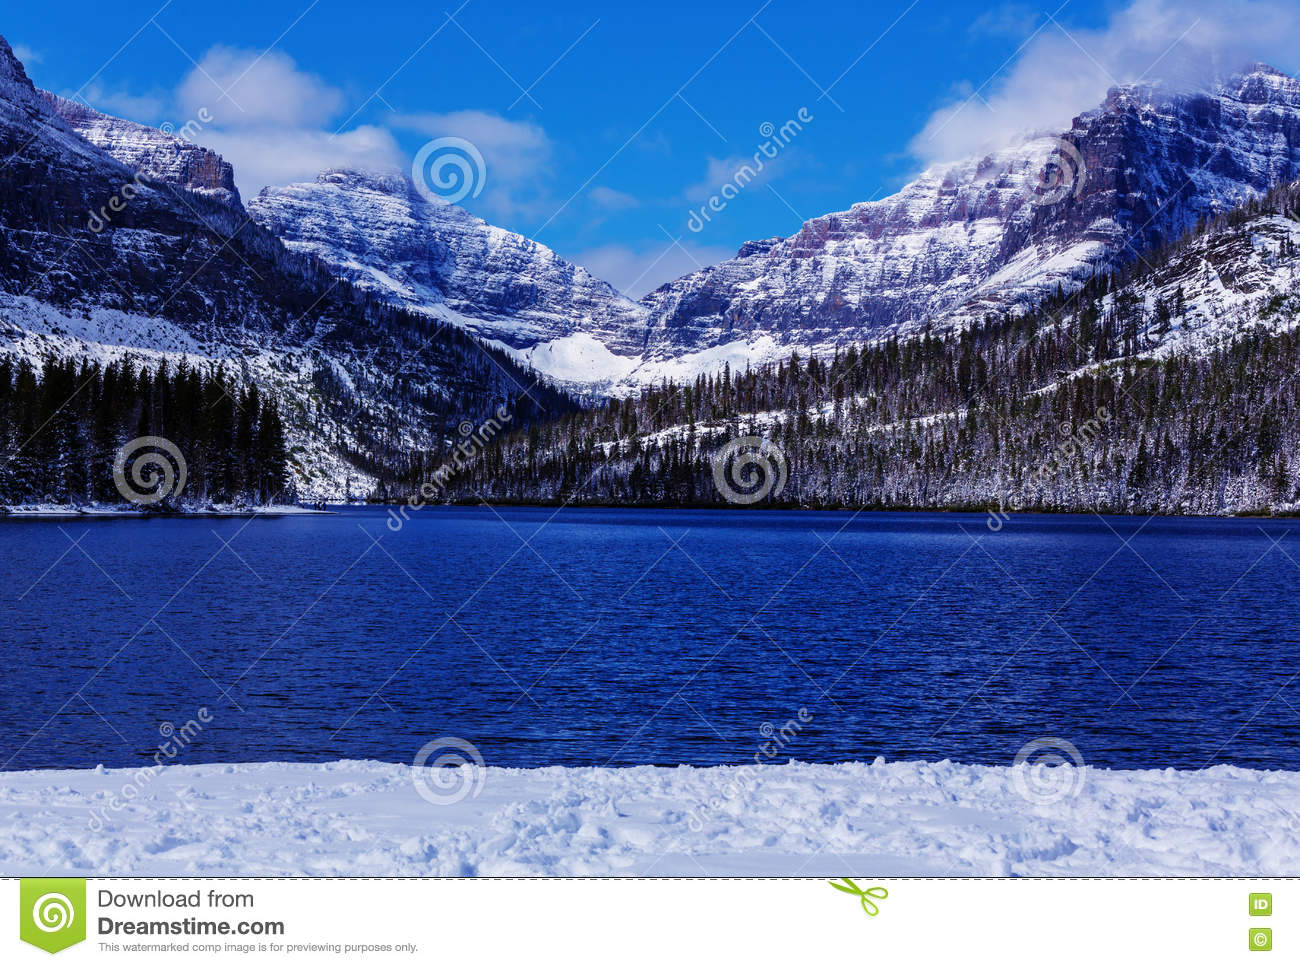 Glacier Park in winter